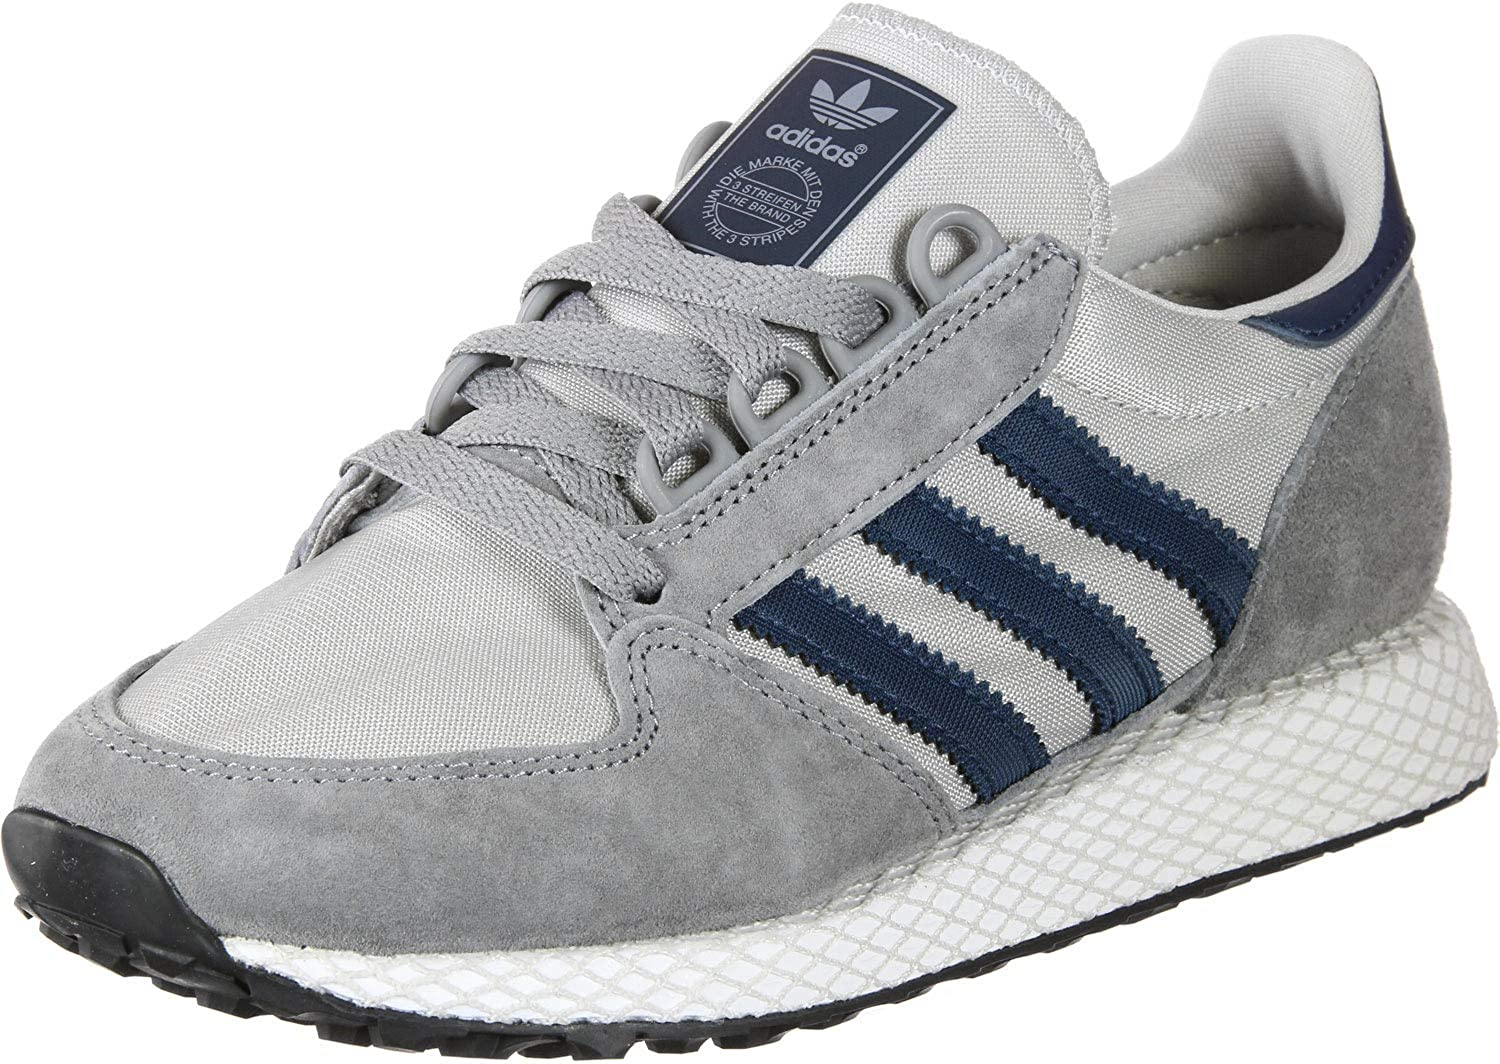 Adidas Forest Grove, Chaussures de Fitness Homme B41546